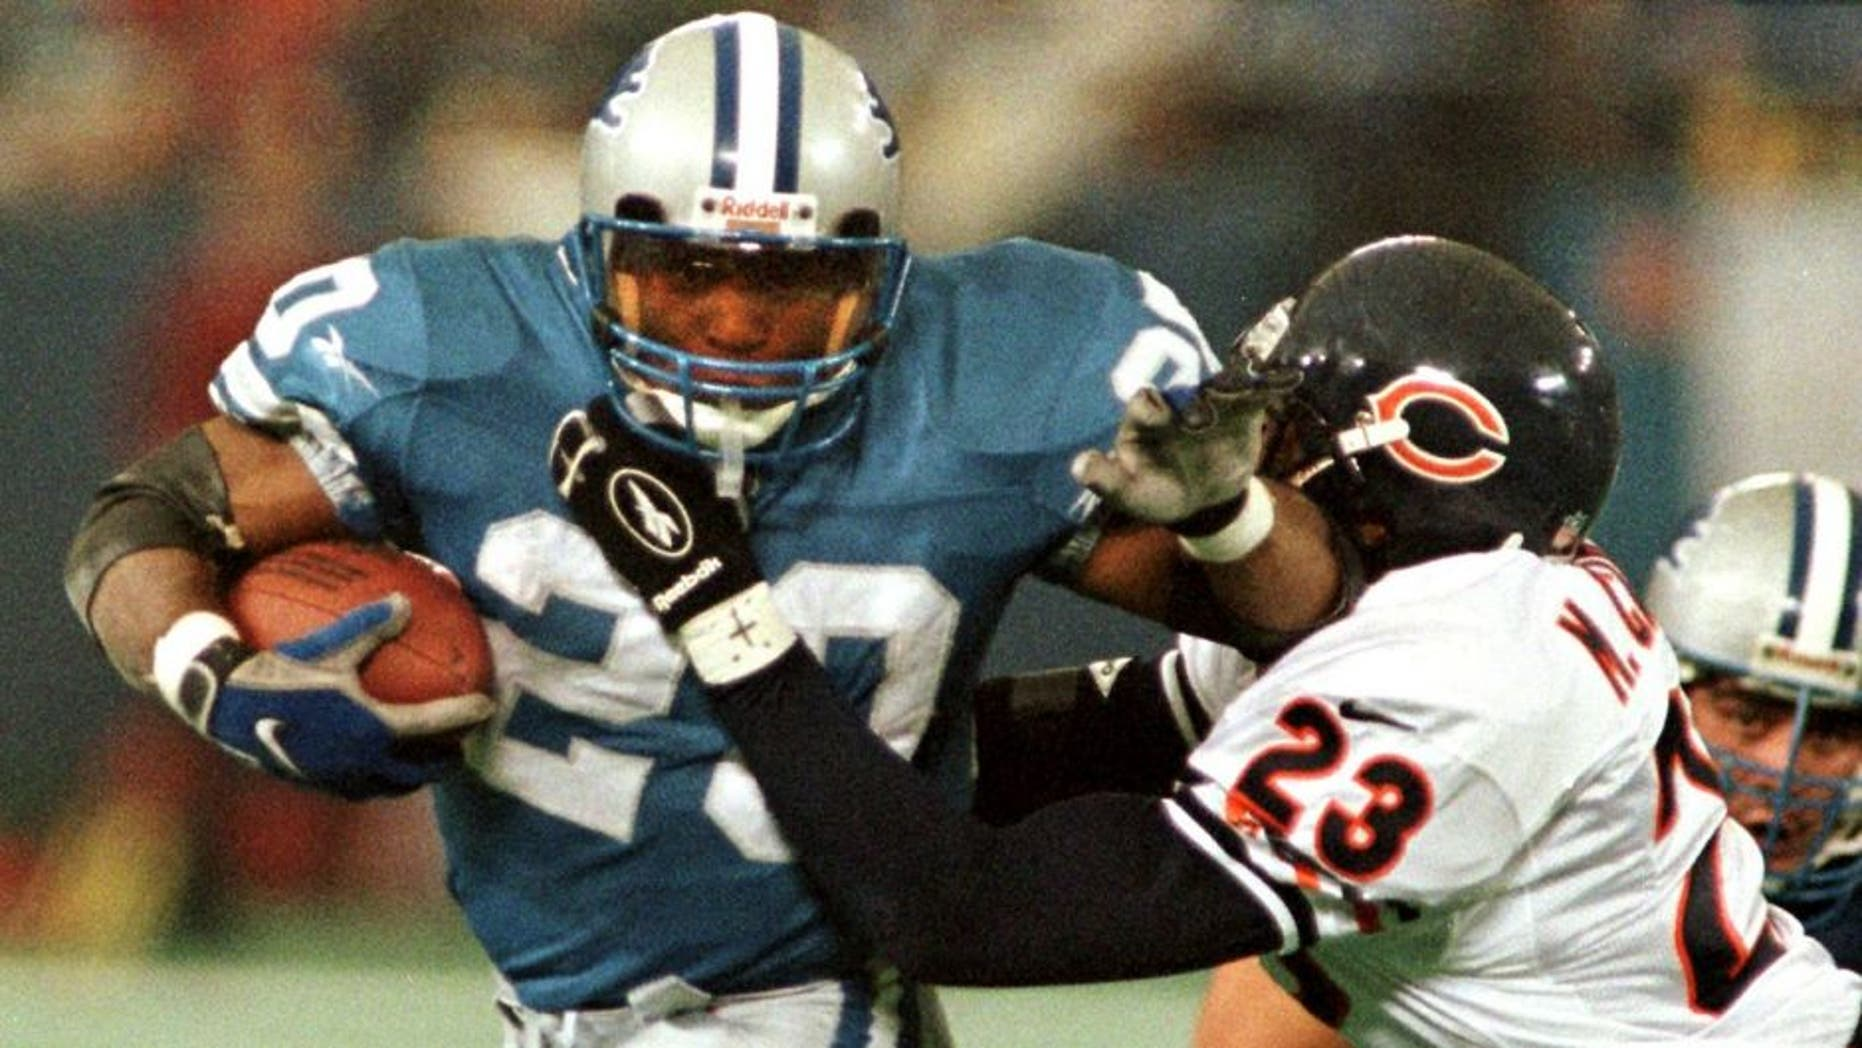 PONTIAC, : The Detroit Lions' Barry Sanders (L) brushes off Chicago Bears safety Marty Carter (R) on his way to the end zone for a touchdown in the third quarter, 27 November, at the Silverdome in Pontiac, MI. On the play, Sanders passed the 100-yard mark in a game for the 11th straight time tieing the NFL record held by Marcus Allen. The Lions beat the Bears 55-20. AFP PHOTO Matt CAMPBELL (Photo credit should read MATT CAMPBELL/AFP/Getty Images)